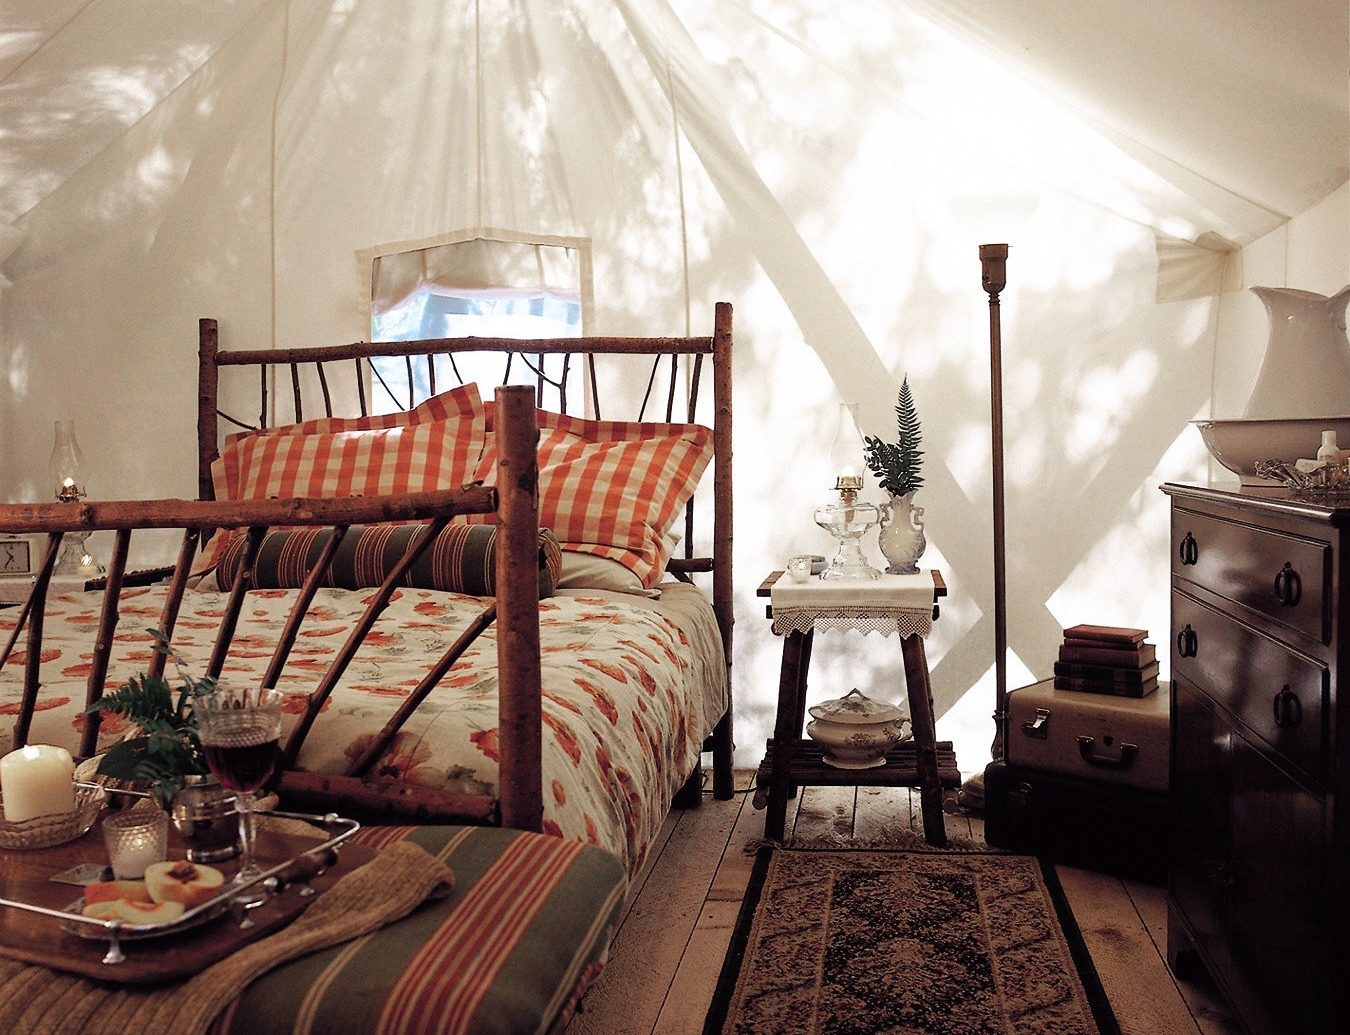 Adventure Bedroom Family Forest Hotels Mountains Outdoors Play Romantic Rustic Scenic views Sport Waterfront Wellness indoor room wall ceiling property Living house home estate living room interior design cottage farmhouse bed furniture several